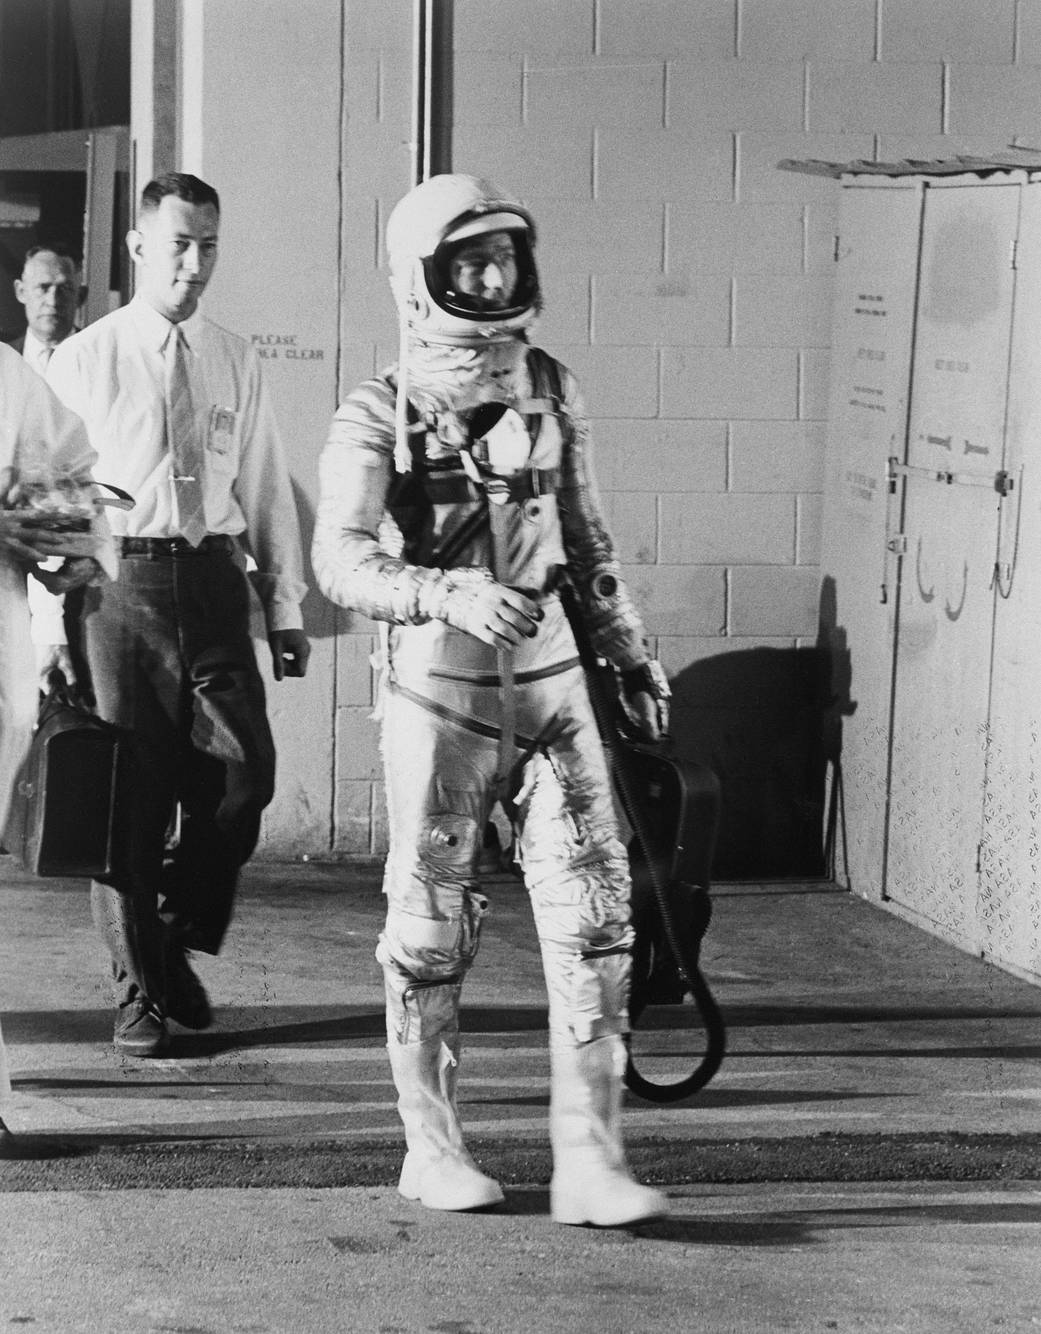 Scott Carpenter Walking to Mercury Atlas 7 launch, 1962